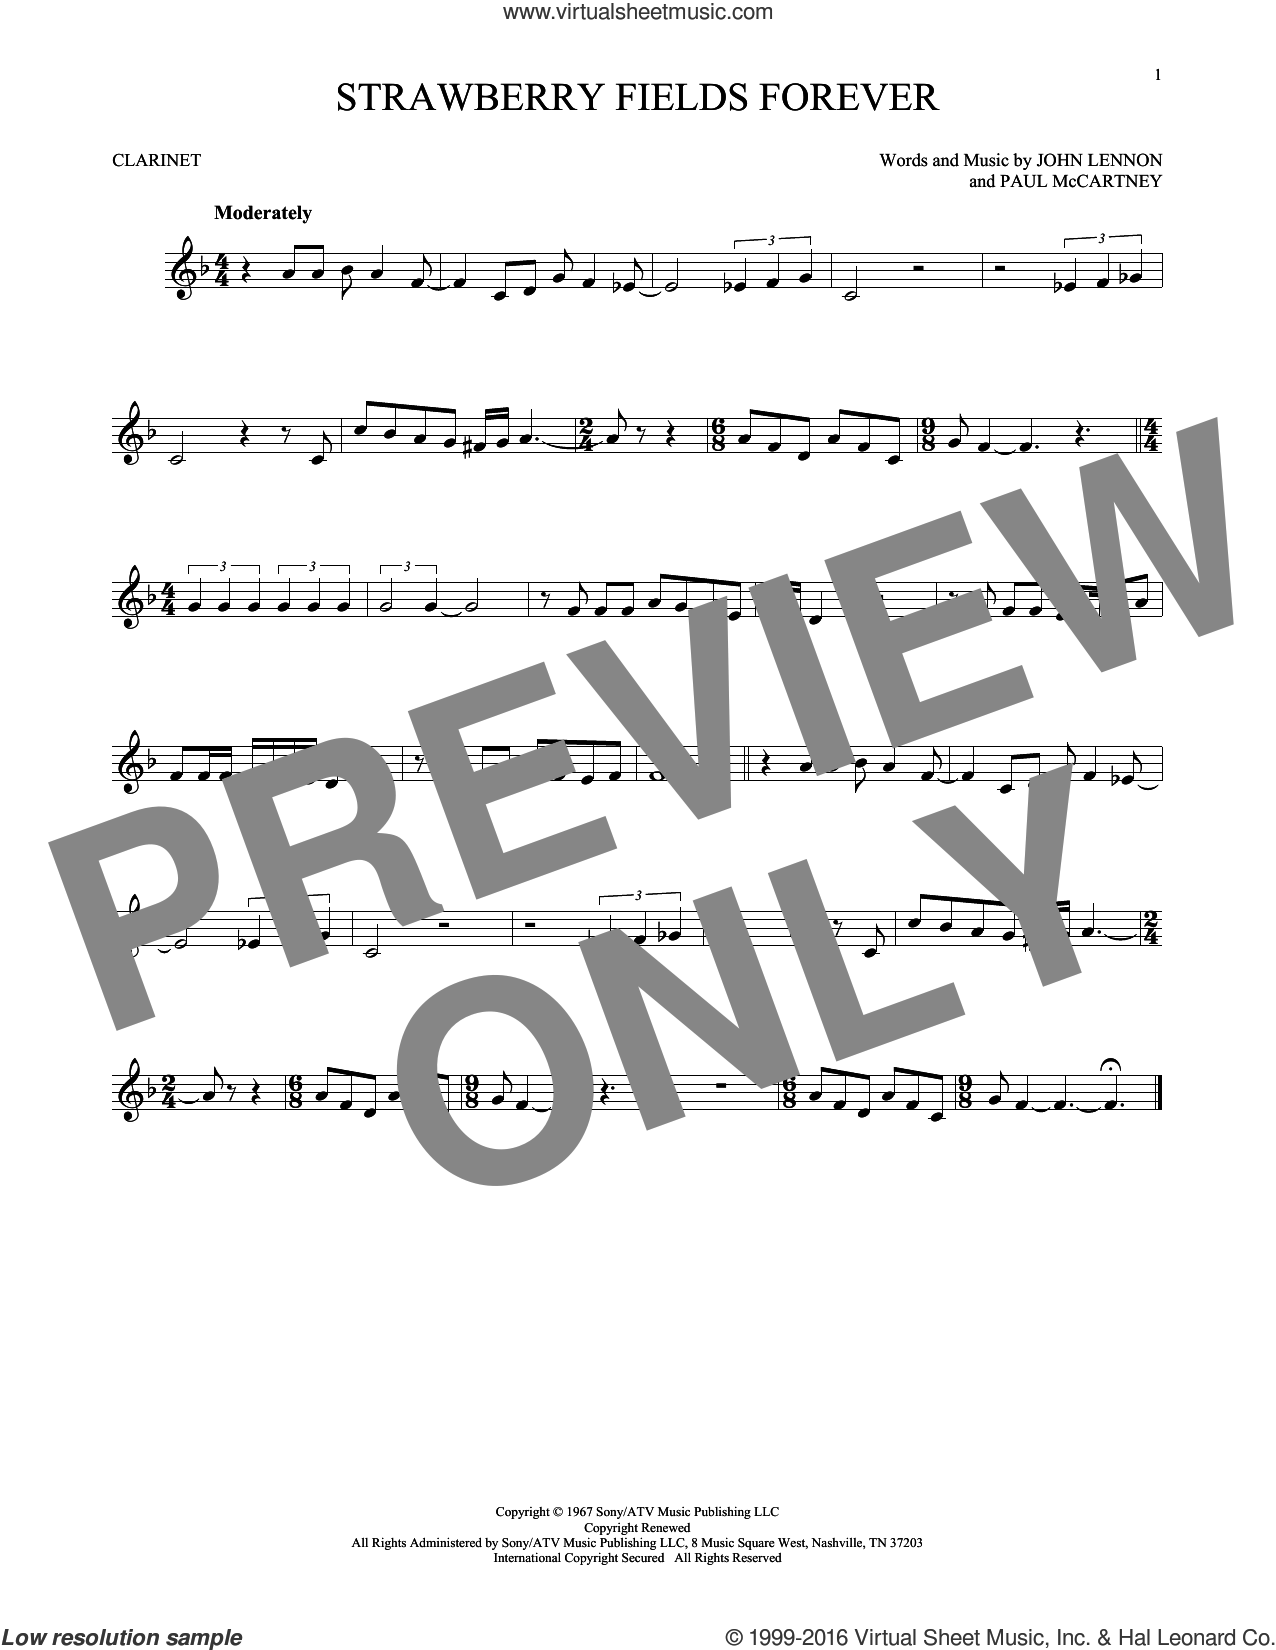 Strawberry Fields Forever sheet music for clarinet solo by The Beatles, John Lennon and Paul McCartney, intermediate skill level